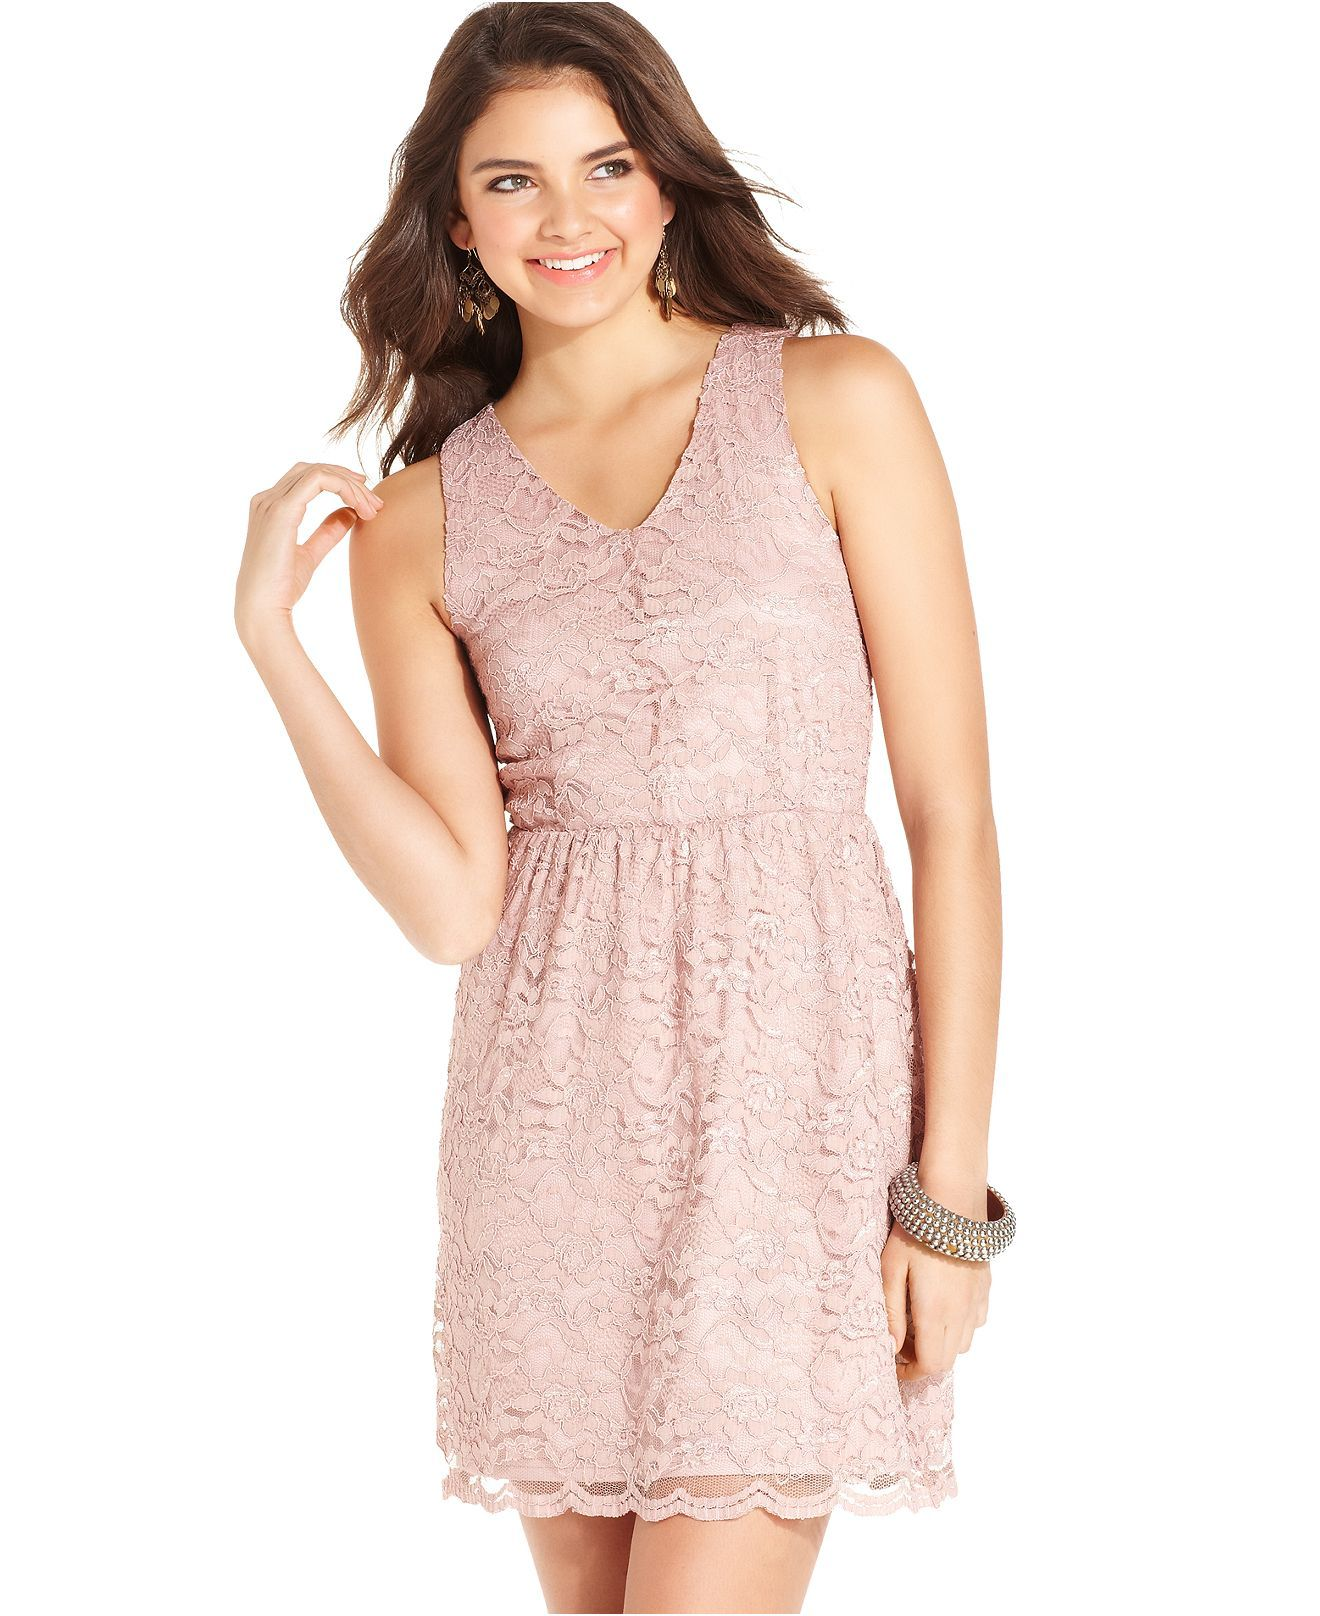 c9932ad0a077 Bridesmaid Dresses At Macys | Saddha